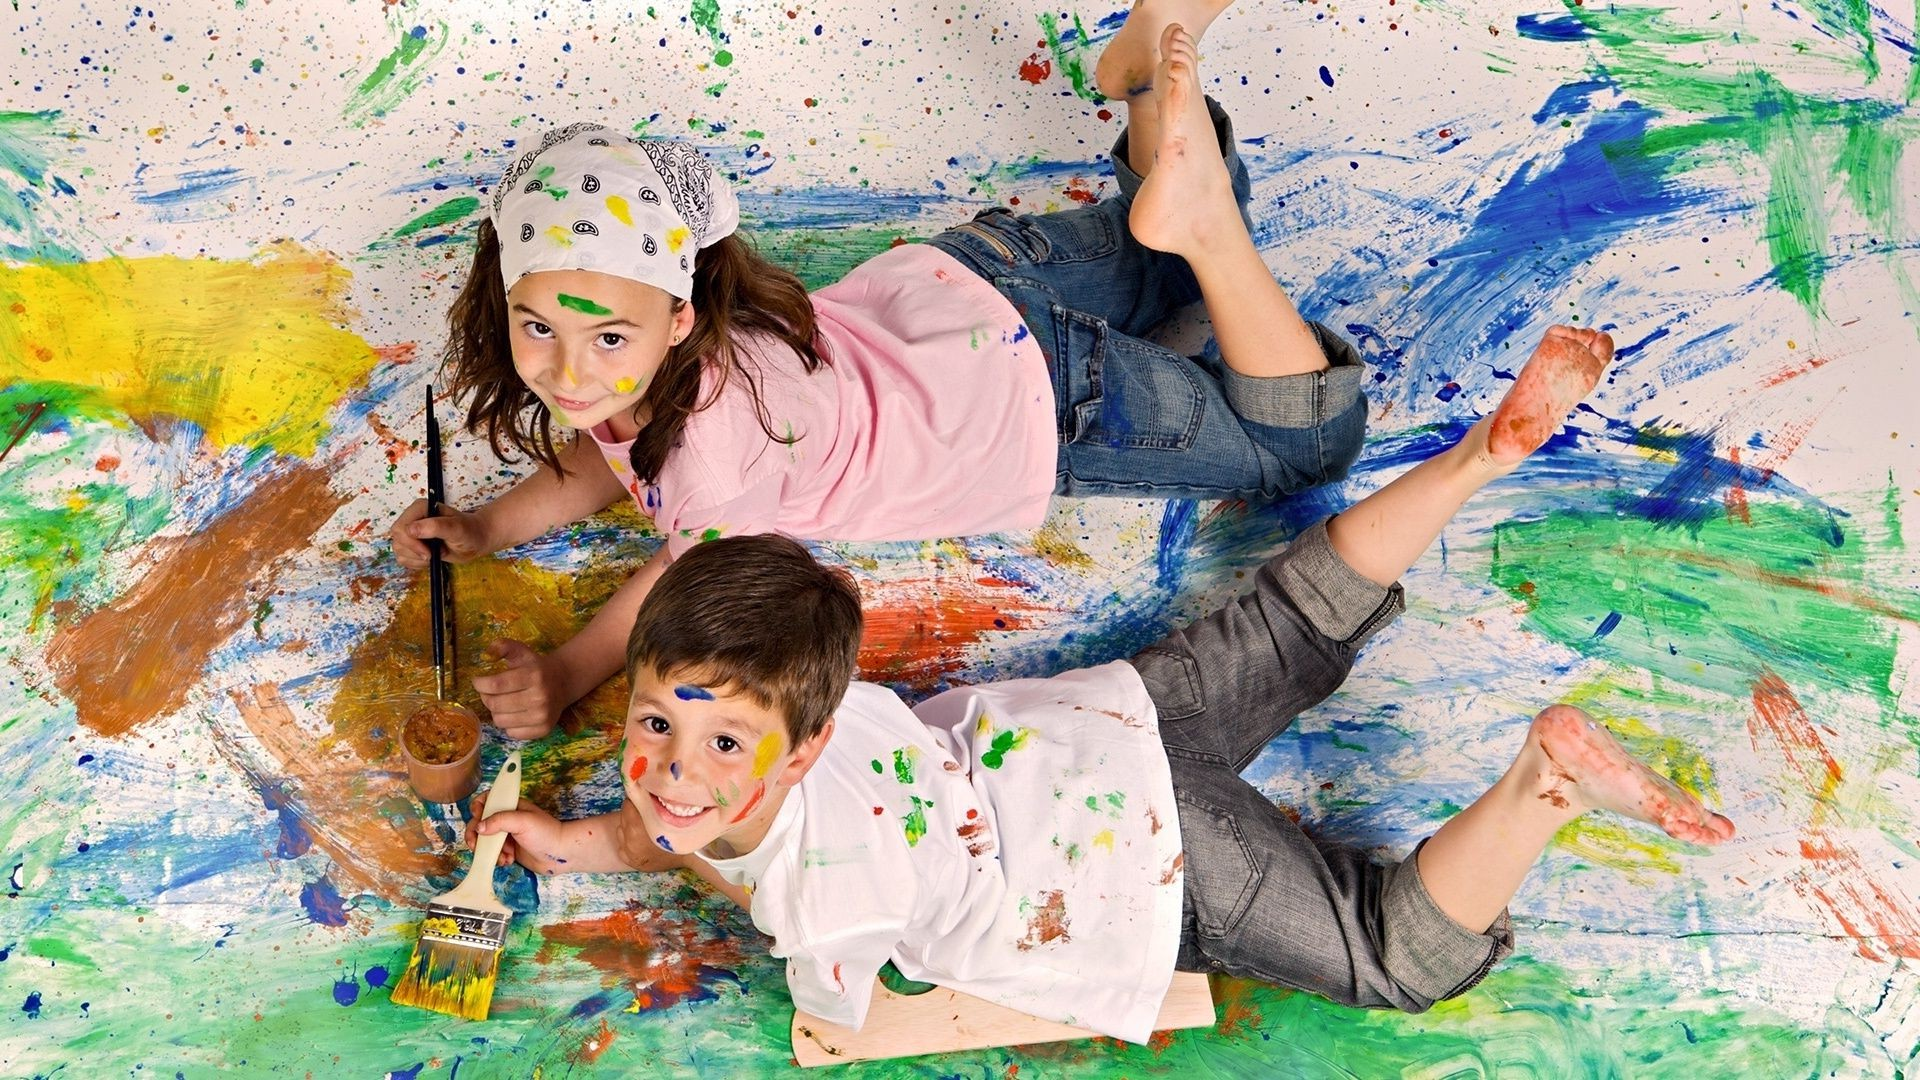 children at a lesson creativity painting child painter fun paintbrush gouache art brush elementary artistic girl leisure messy education preschool youth boy little